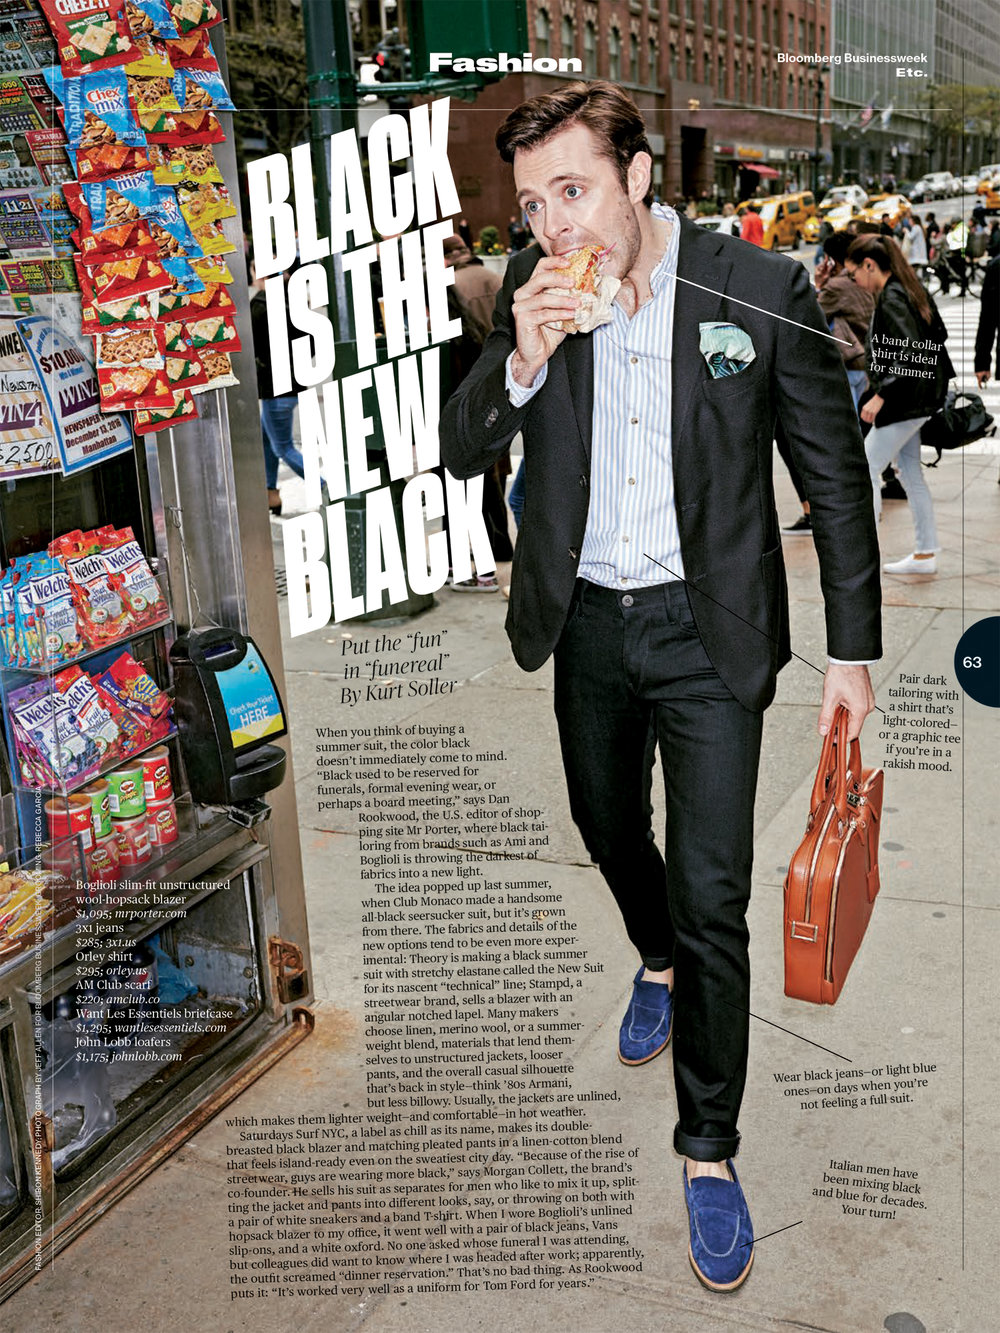 jeff-allen-bloomberg-businessweek-black-suite-tear-sheet.jpg